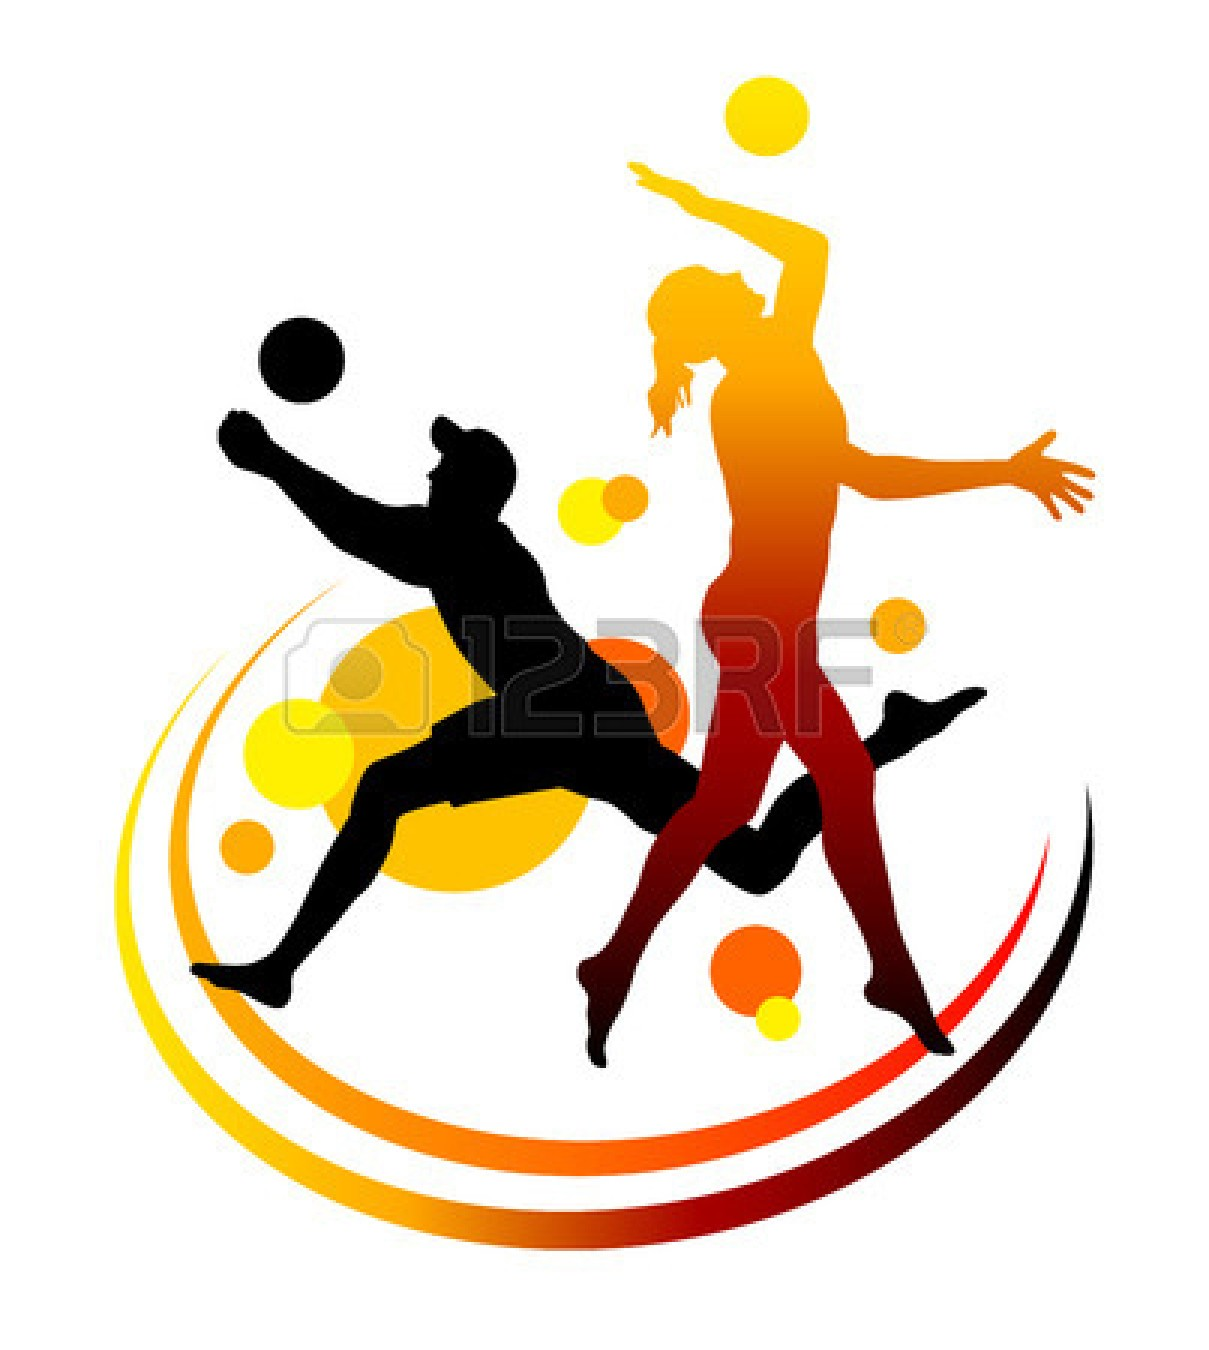 Volleyball players in action clipart clipart royalty free stock Volleyball players in action clipart 8 » Clipart Station clipart royalty free stock